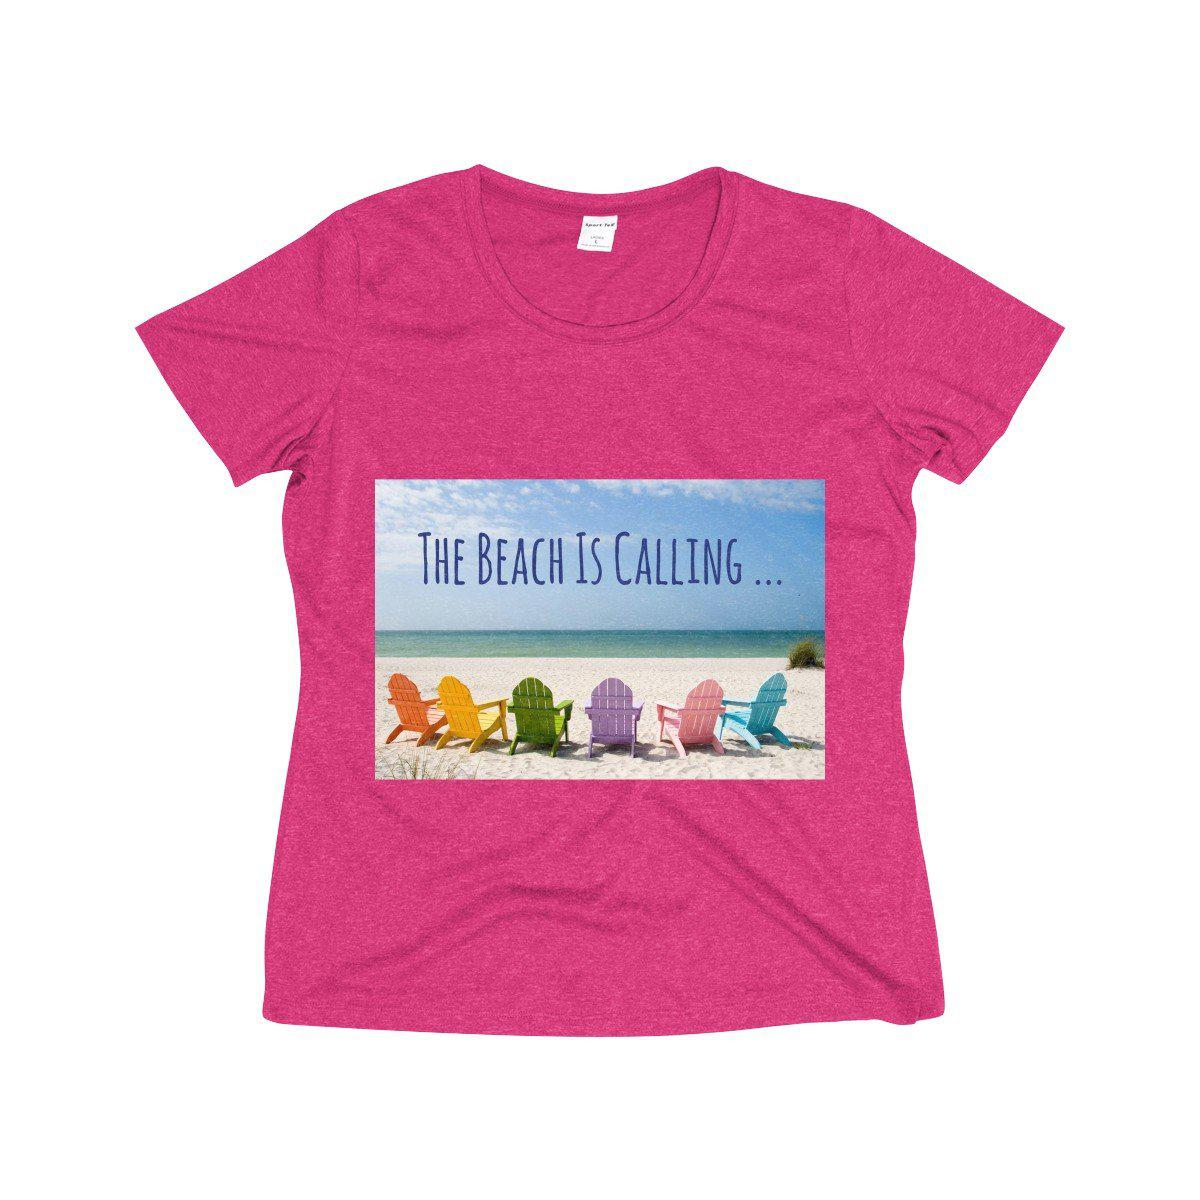 I Love The Beach Tee-T-Shirt-Pink Raspberry Heather-XS-Coastal Passion